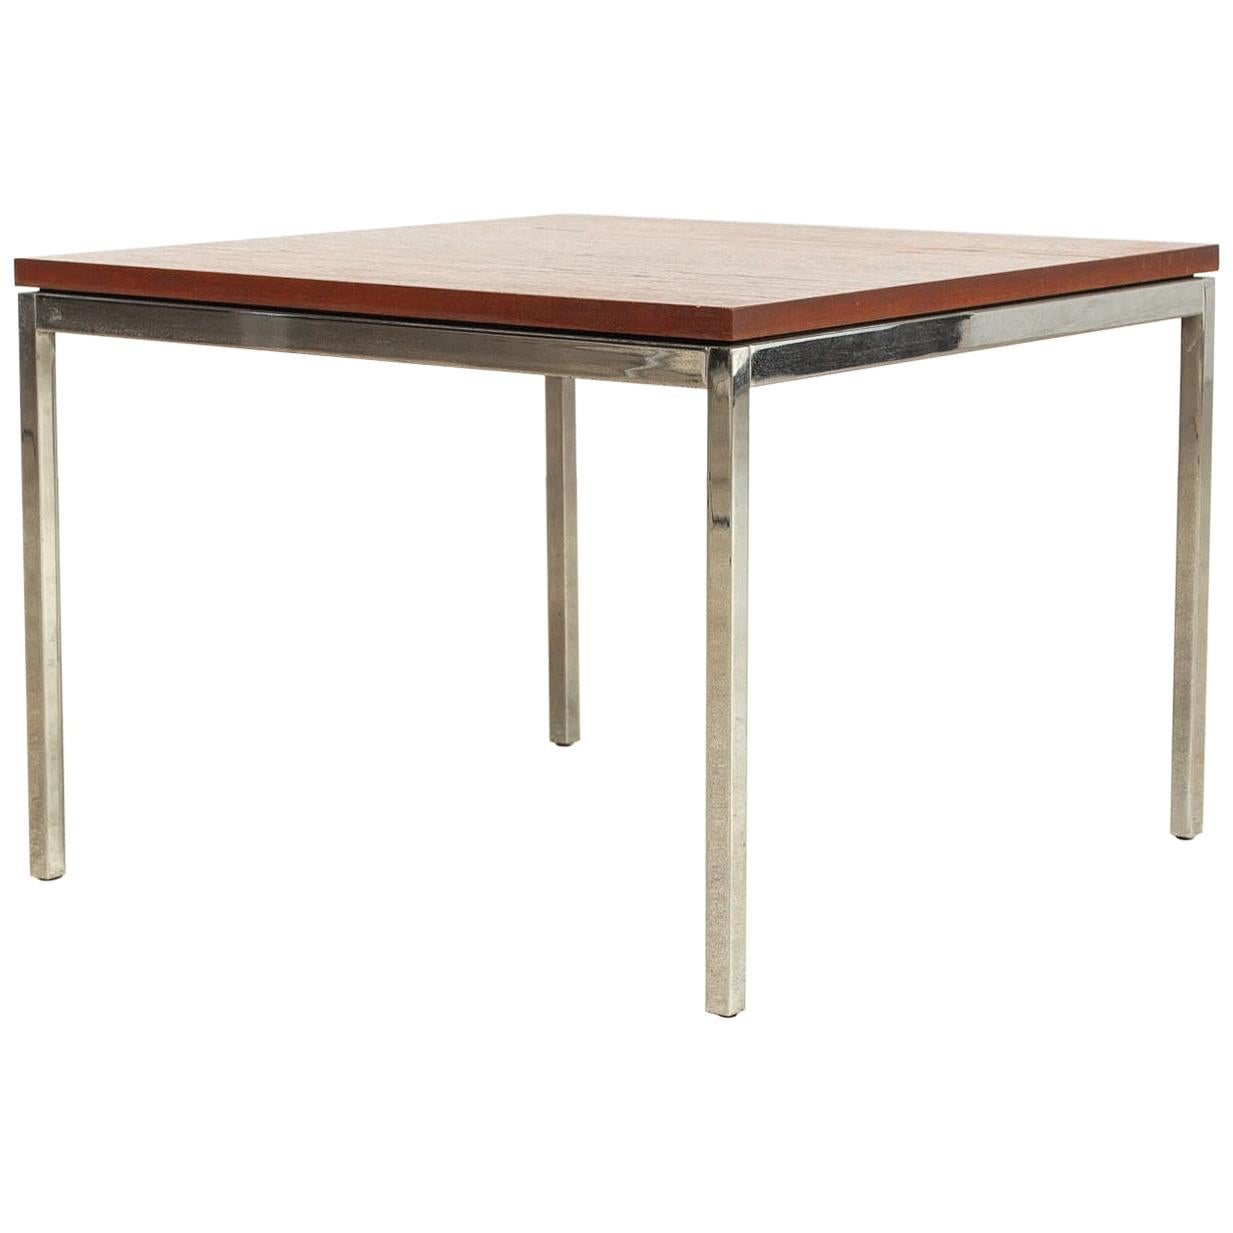 Merveilleux Vintage Midcentury Florence Knoll For Knoll Square Wood And Steel Coffee  Table